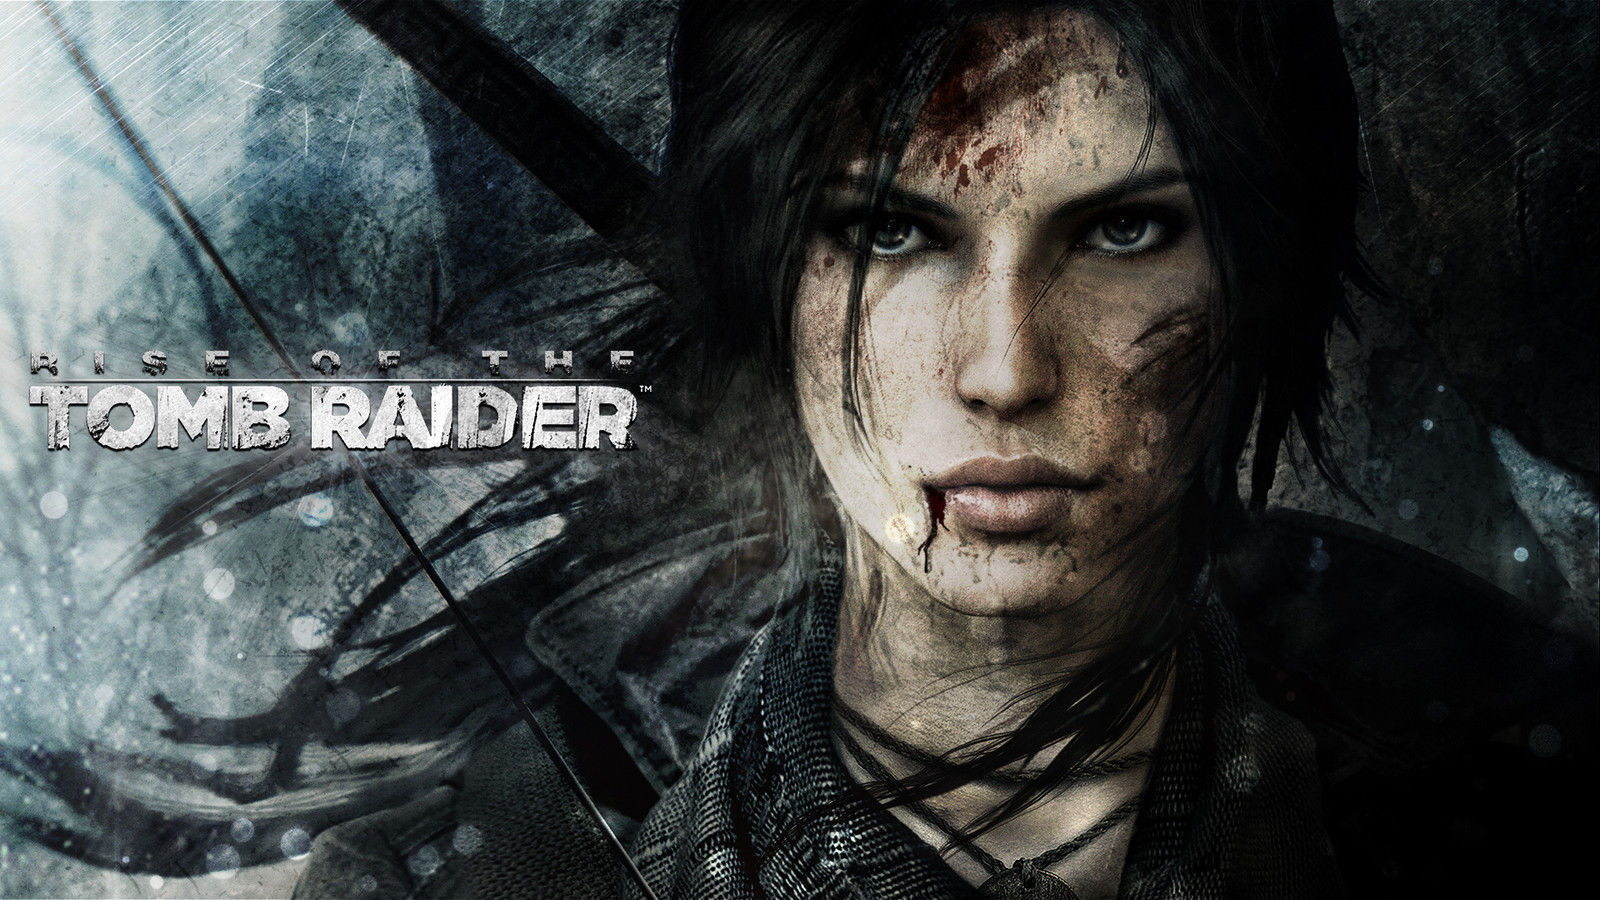 64035 Hot New Rise Of The Tomb Raider